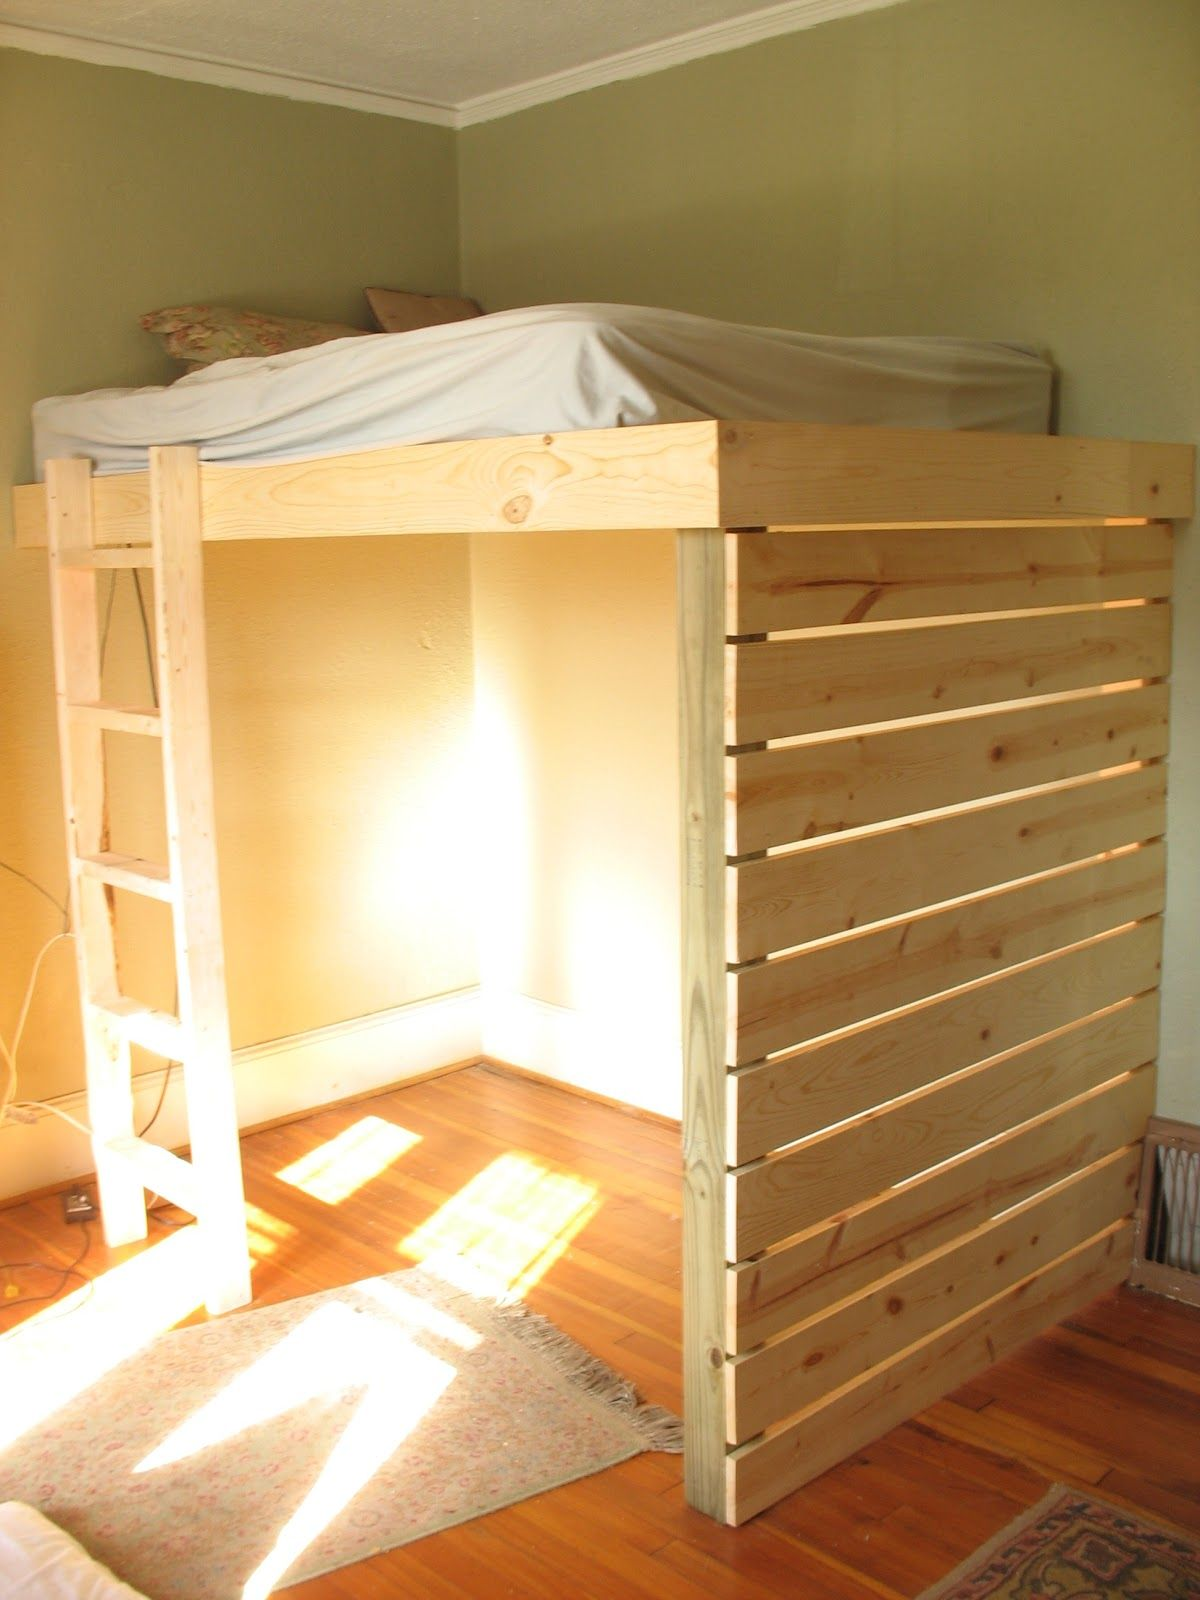 Cool loft bed ideas  Google Image Result for bpspotpuVeCNTZM